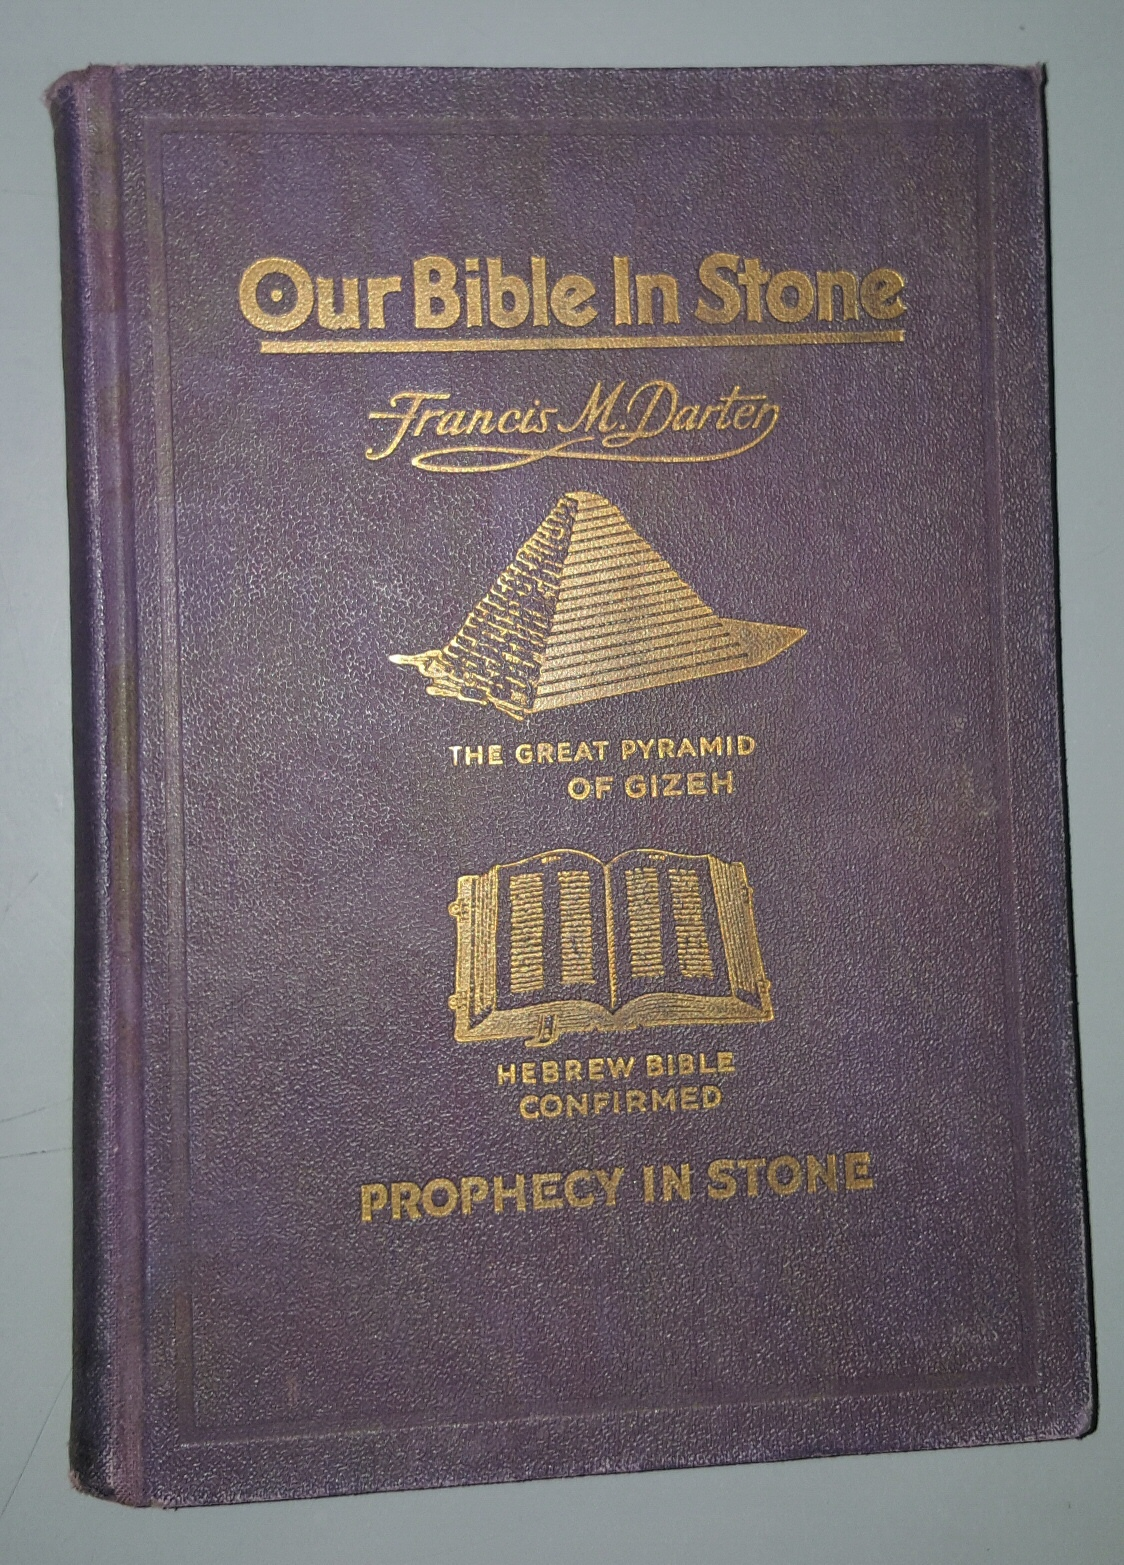 OUR BIBLE IN STONE; Its Divine Purpose and Present Day Message the Mystery of the Ages Unveiled, Darter, Francis M.